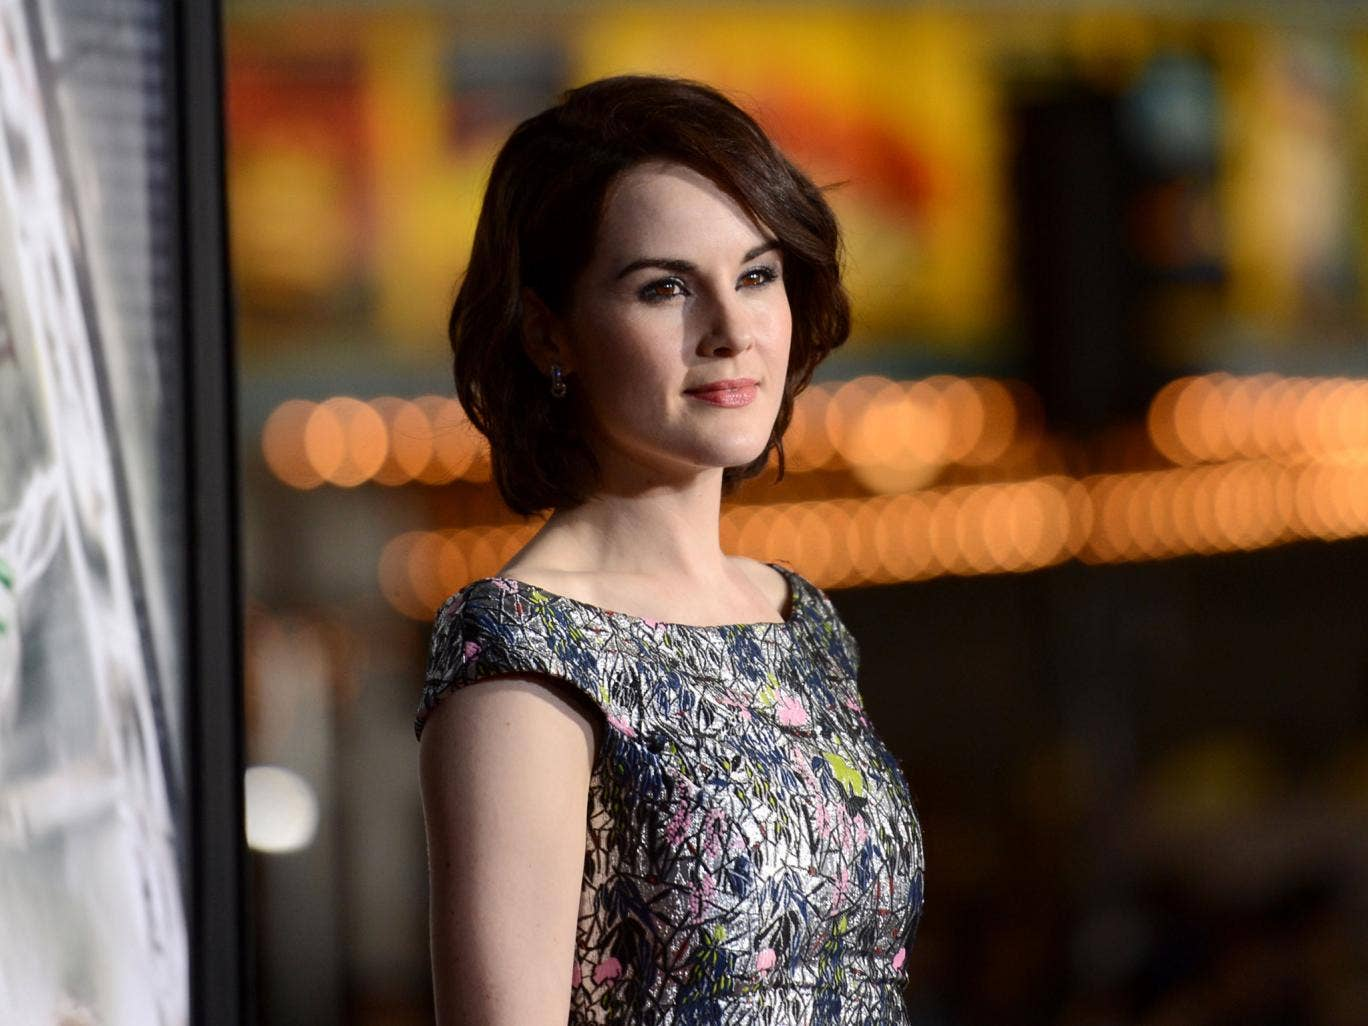 Michelle Dockery at the LA premiere for Non-Stop, in which she plays gutsy air hostess Nancy alongside Liam Neeson